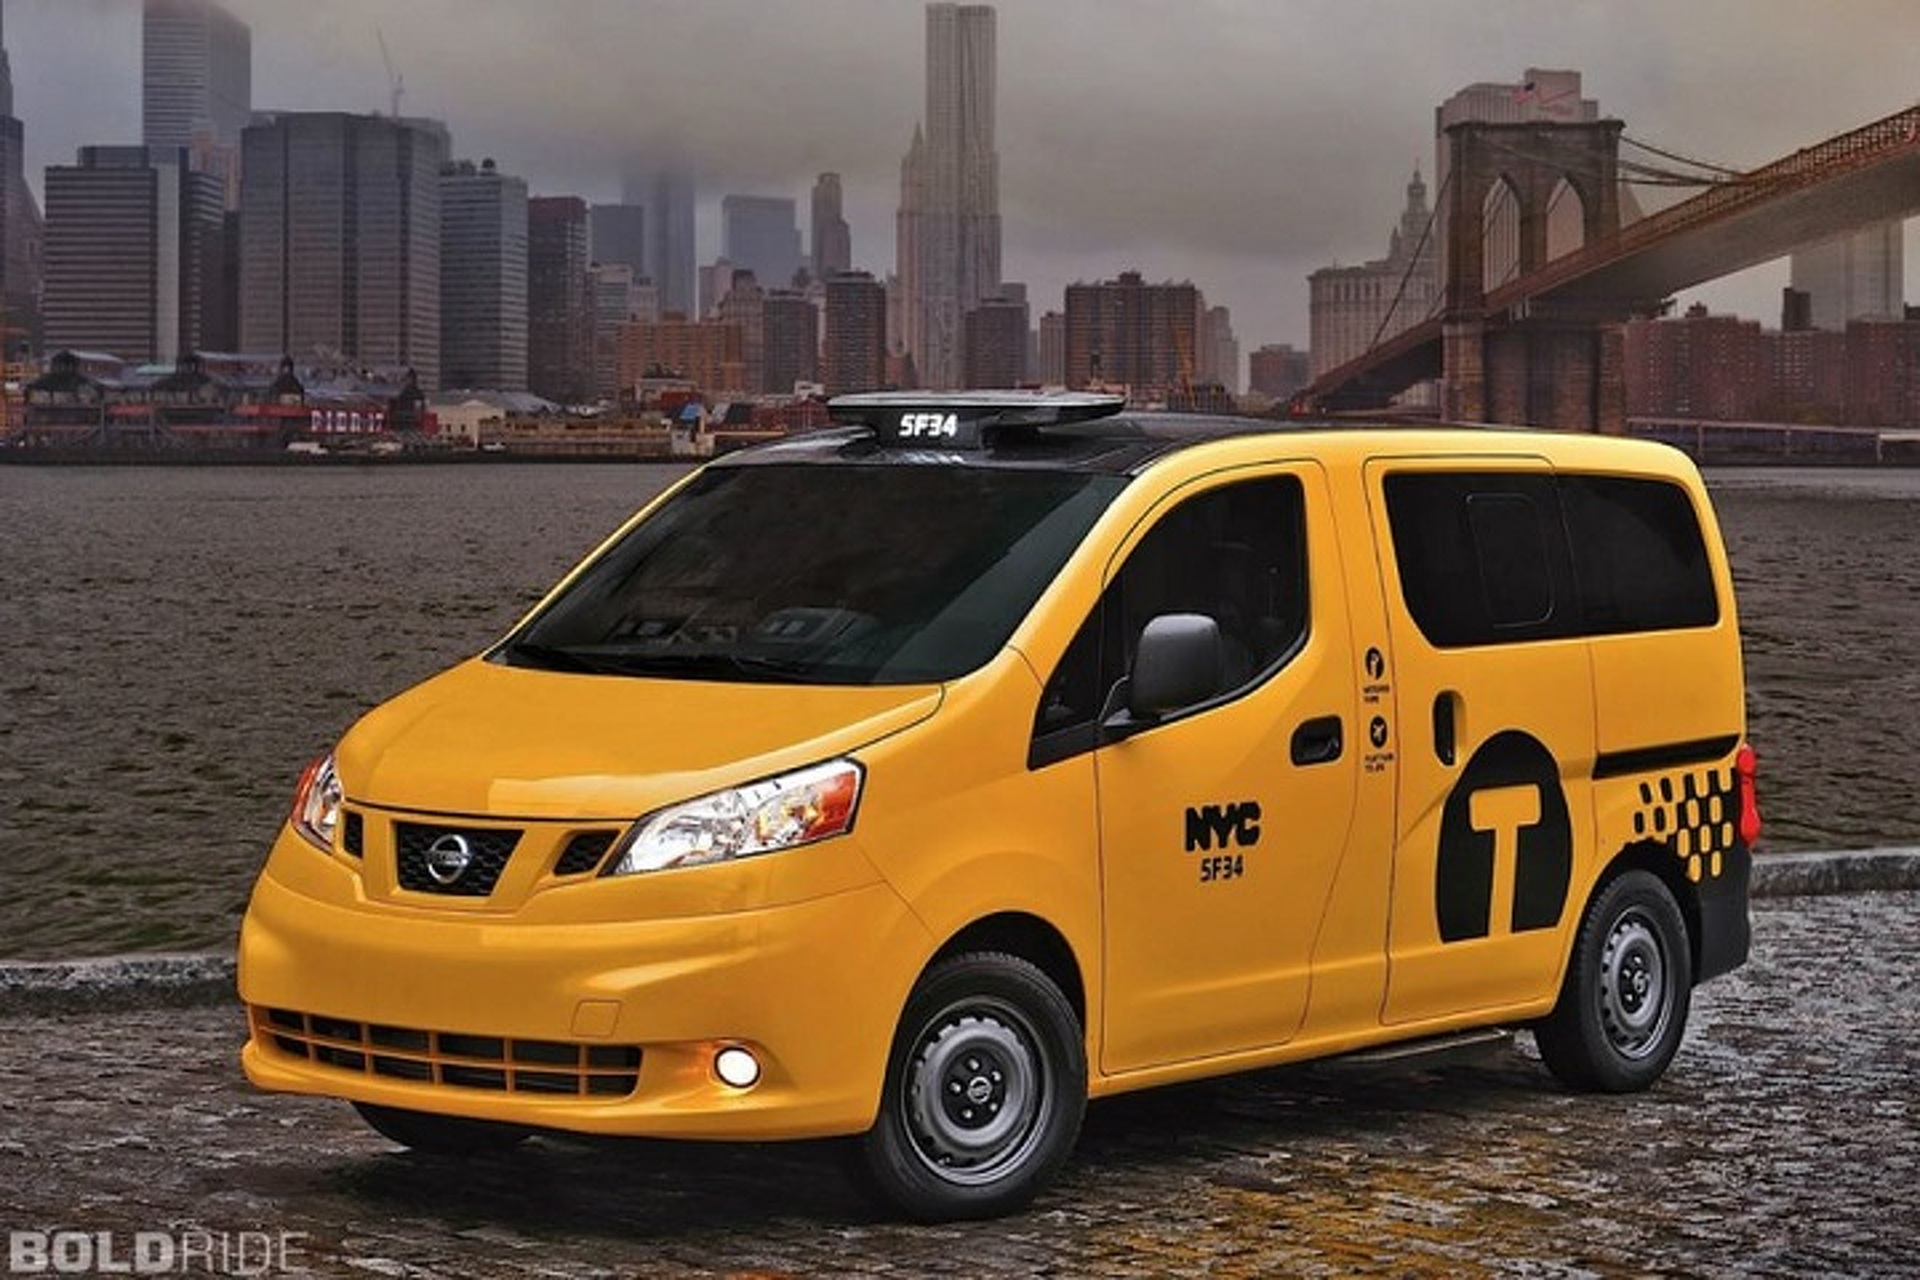 Self-Driving Taxis Could Put Uber and Lyft on Notice